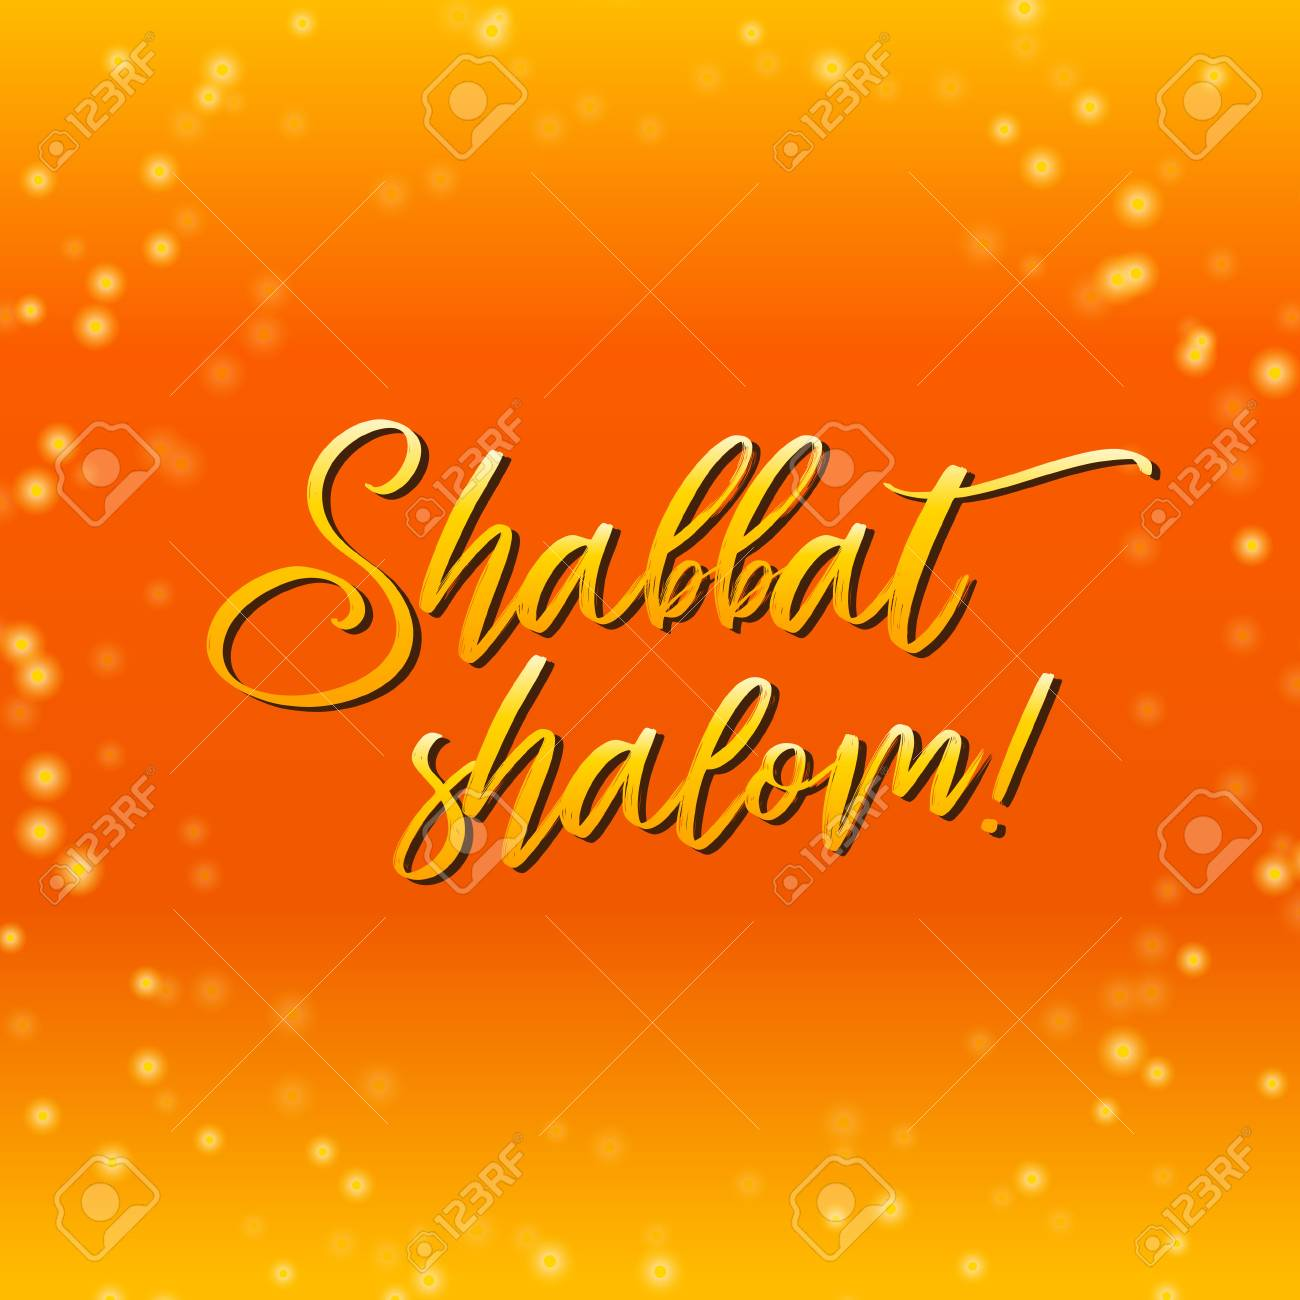 Shabbat shalom lettering greeting card vector illustration shabbat shalom lettering greeting card vector illustration hebrew words shabbat shalom and starry thecheapjerseys Image collections